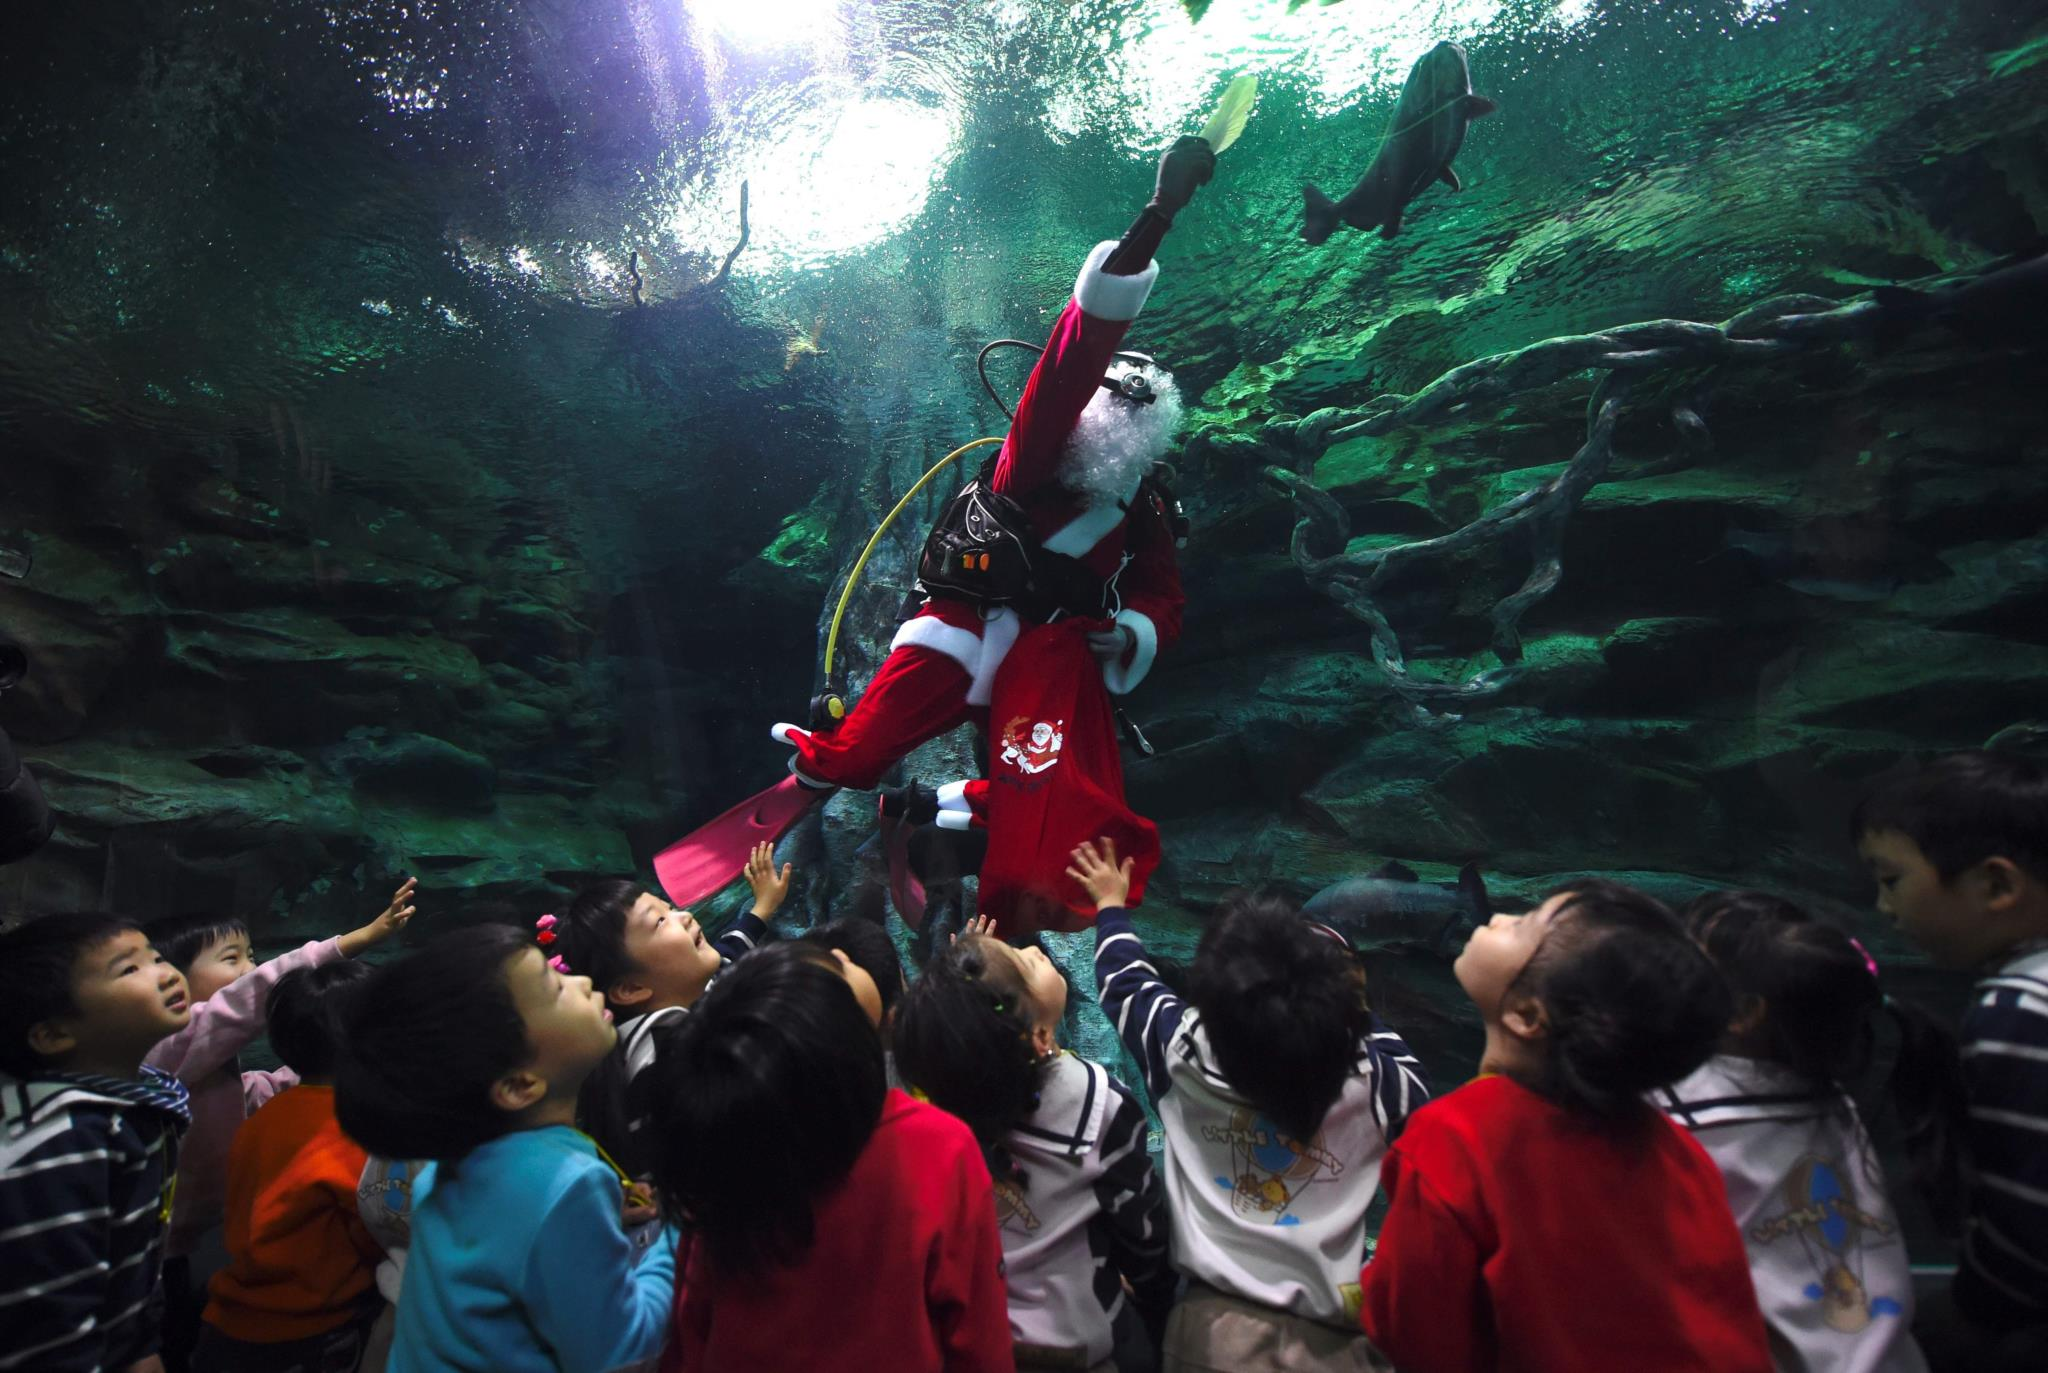 Lotte World Aquarium em Seul, Coreia do Sul